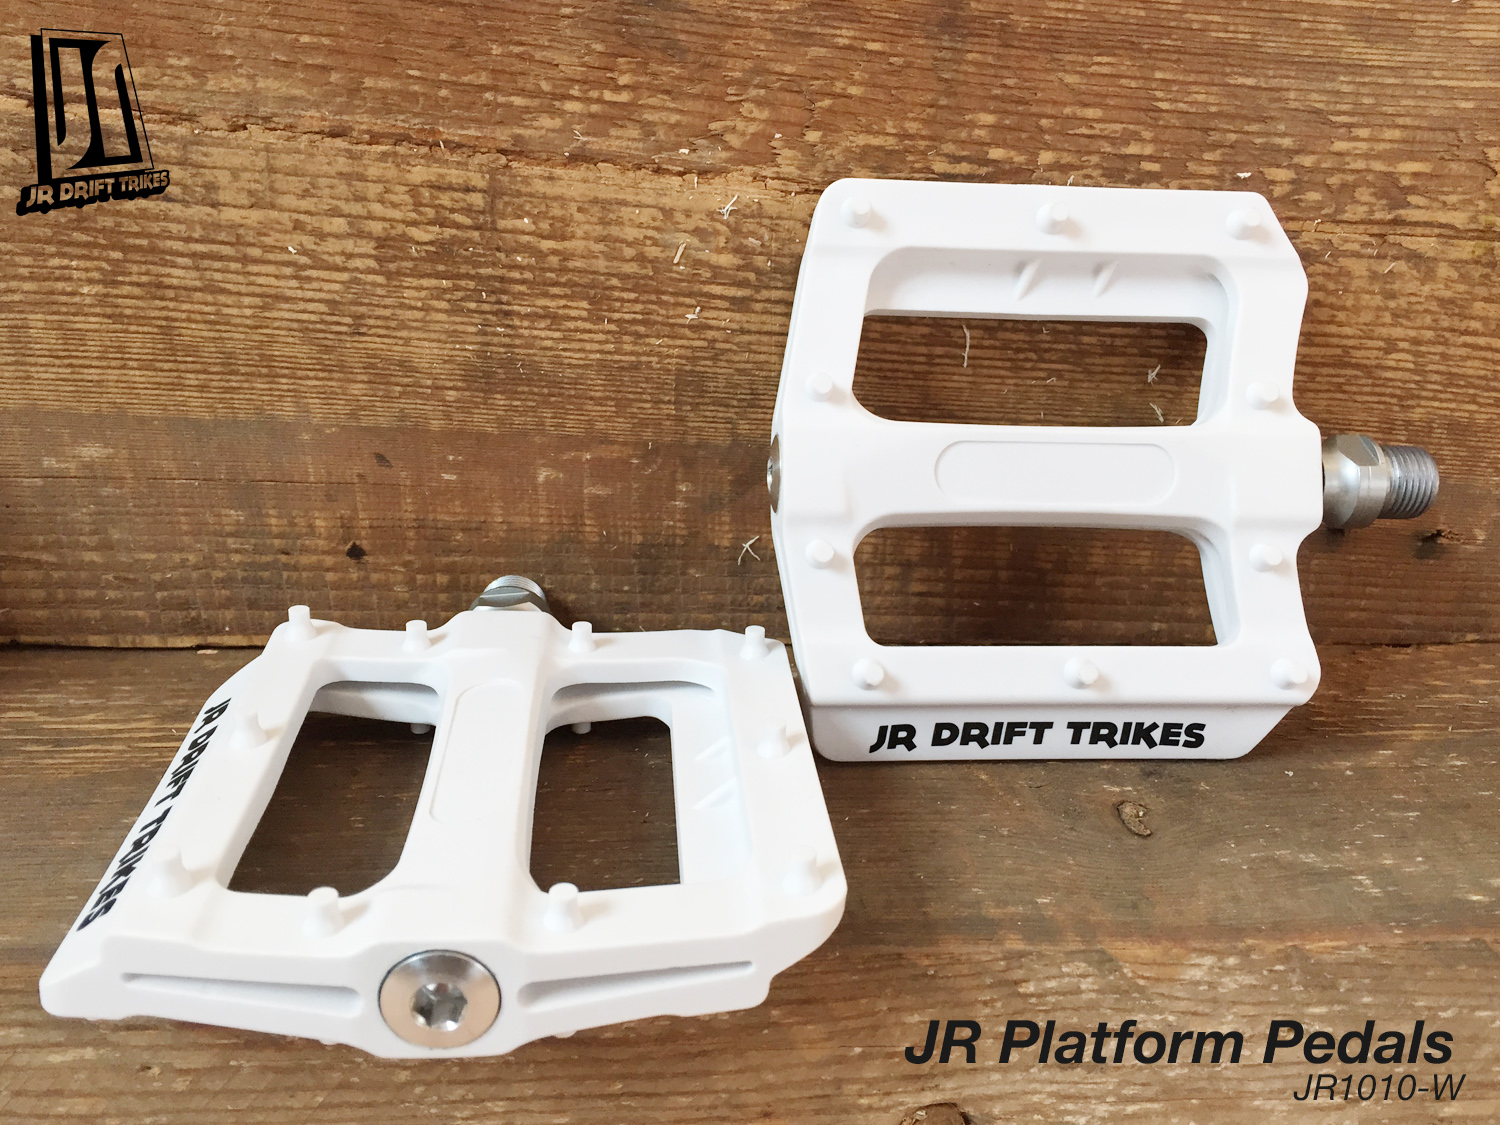 jr-drift-trikes-platform-pedals-white-jr1010-w.jpg